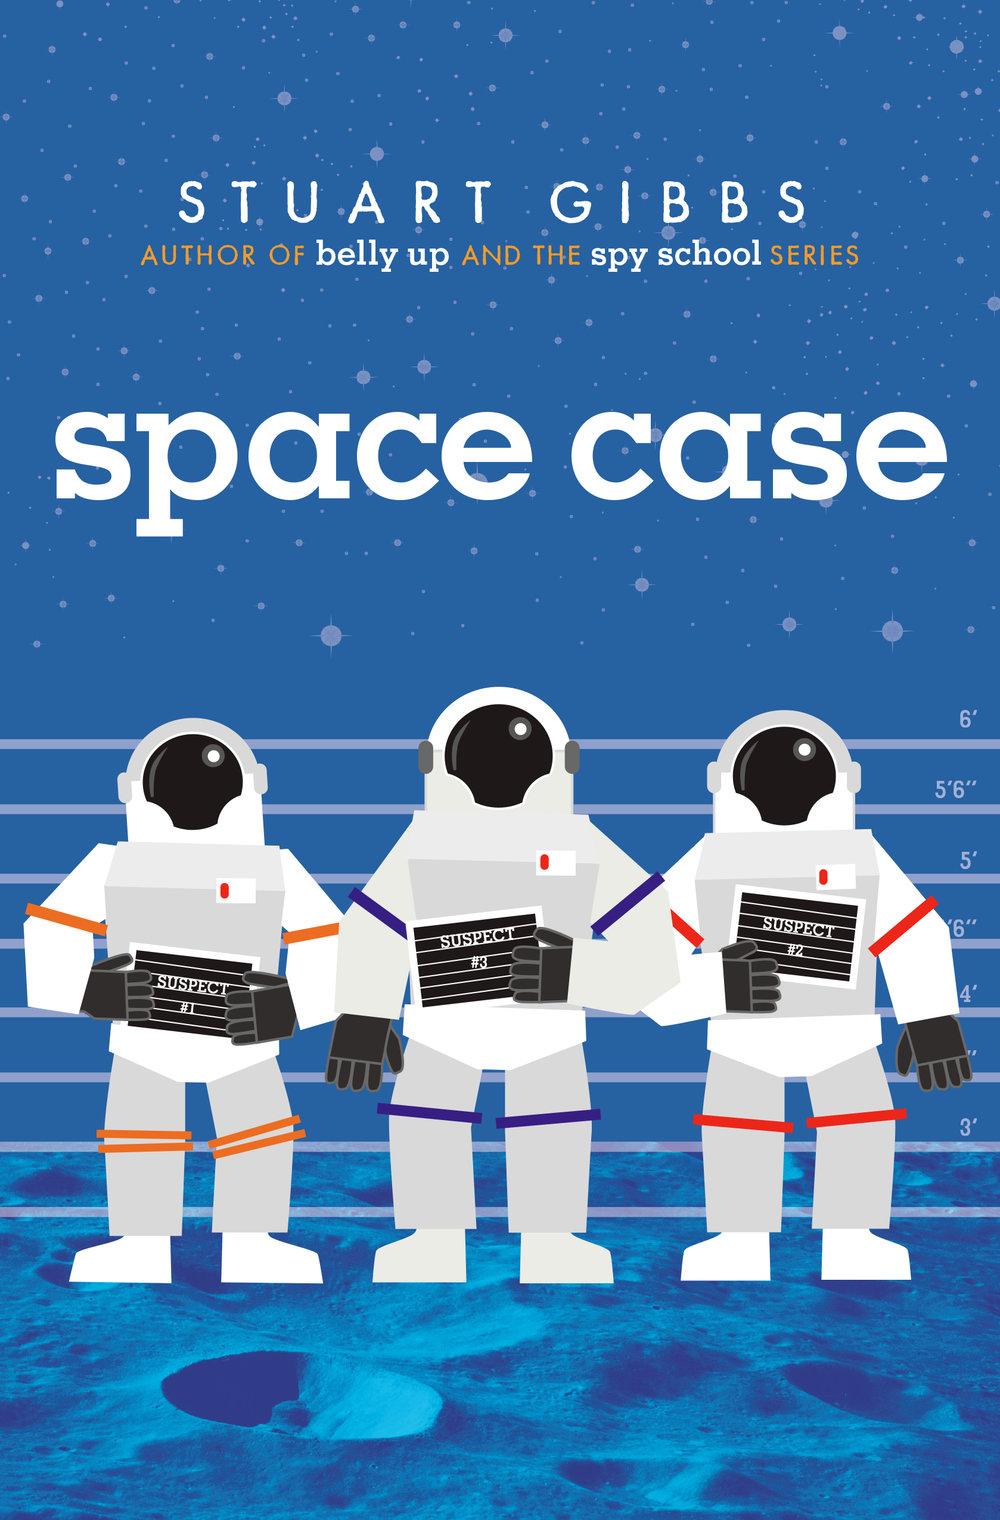 stuart-gibbs-space-case.jpg